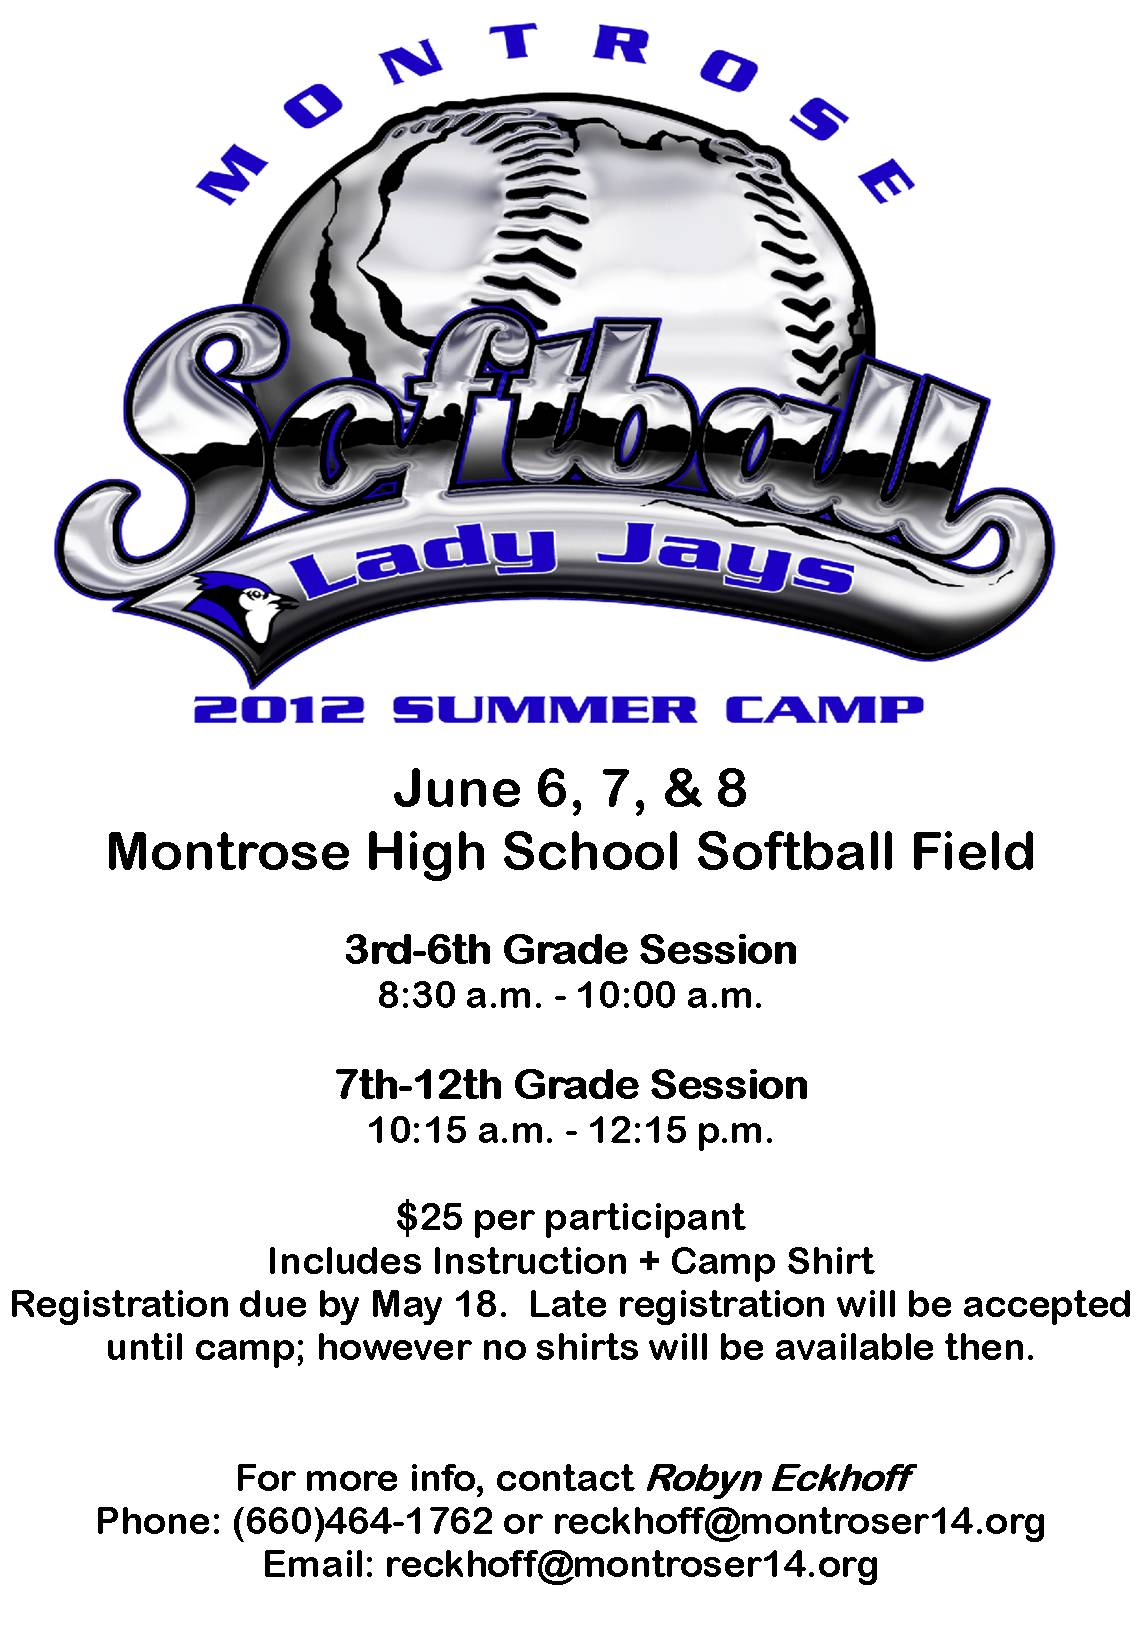 Montrose r 14 schools summer softball camp coming in june for Softball flyers templates